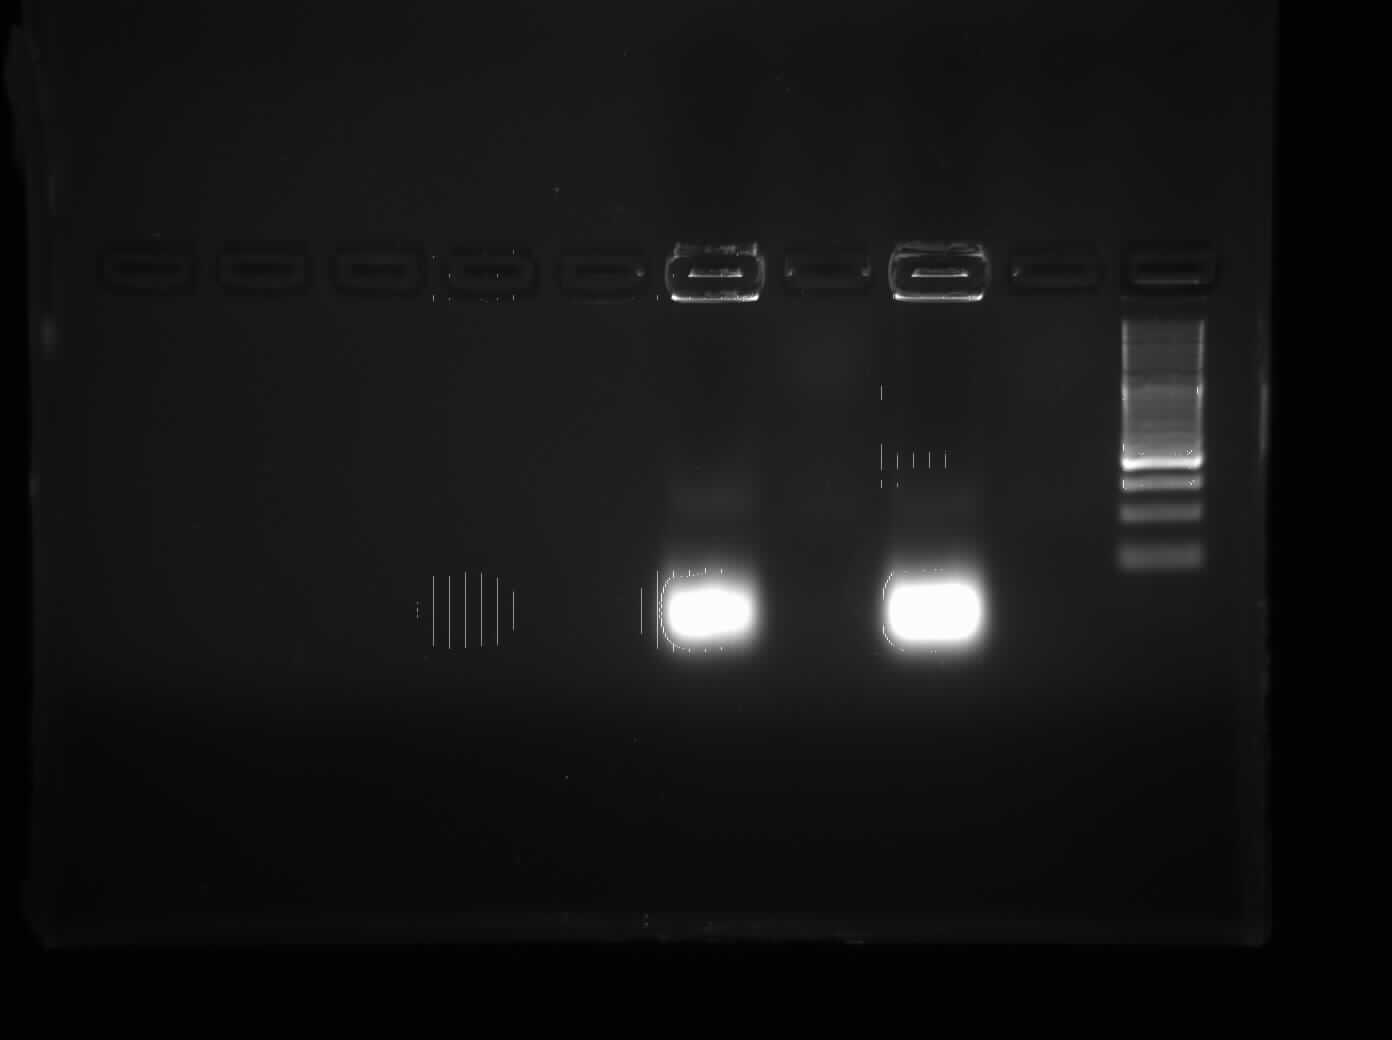 Troubleshooting PCR Part Two: What to Do When You Are Not Getting Bands - Ooooh Noooo - No PCR Bands!